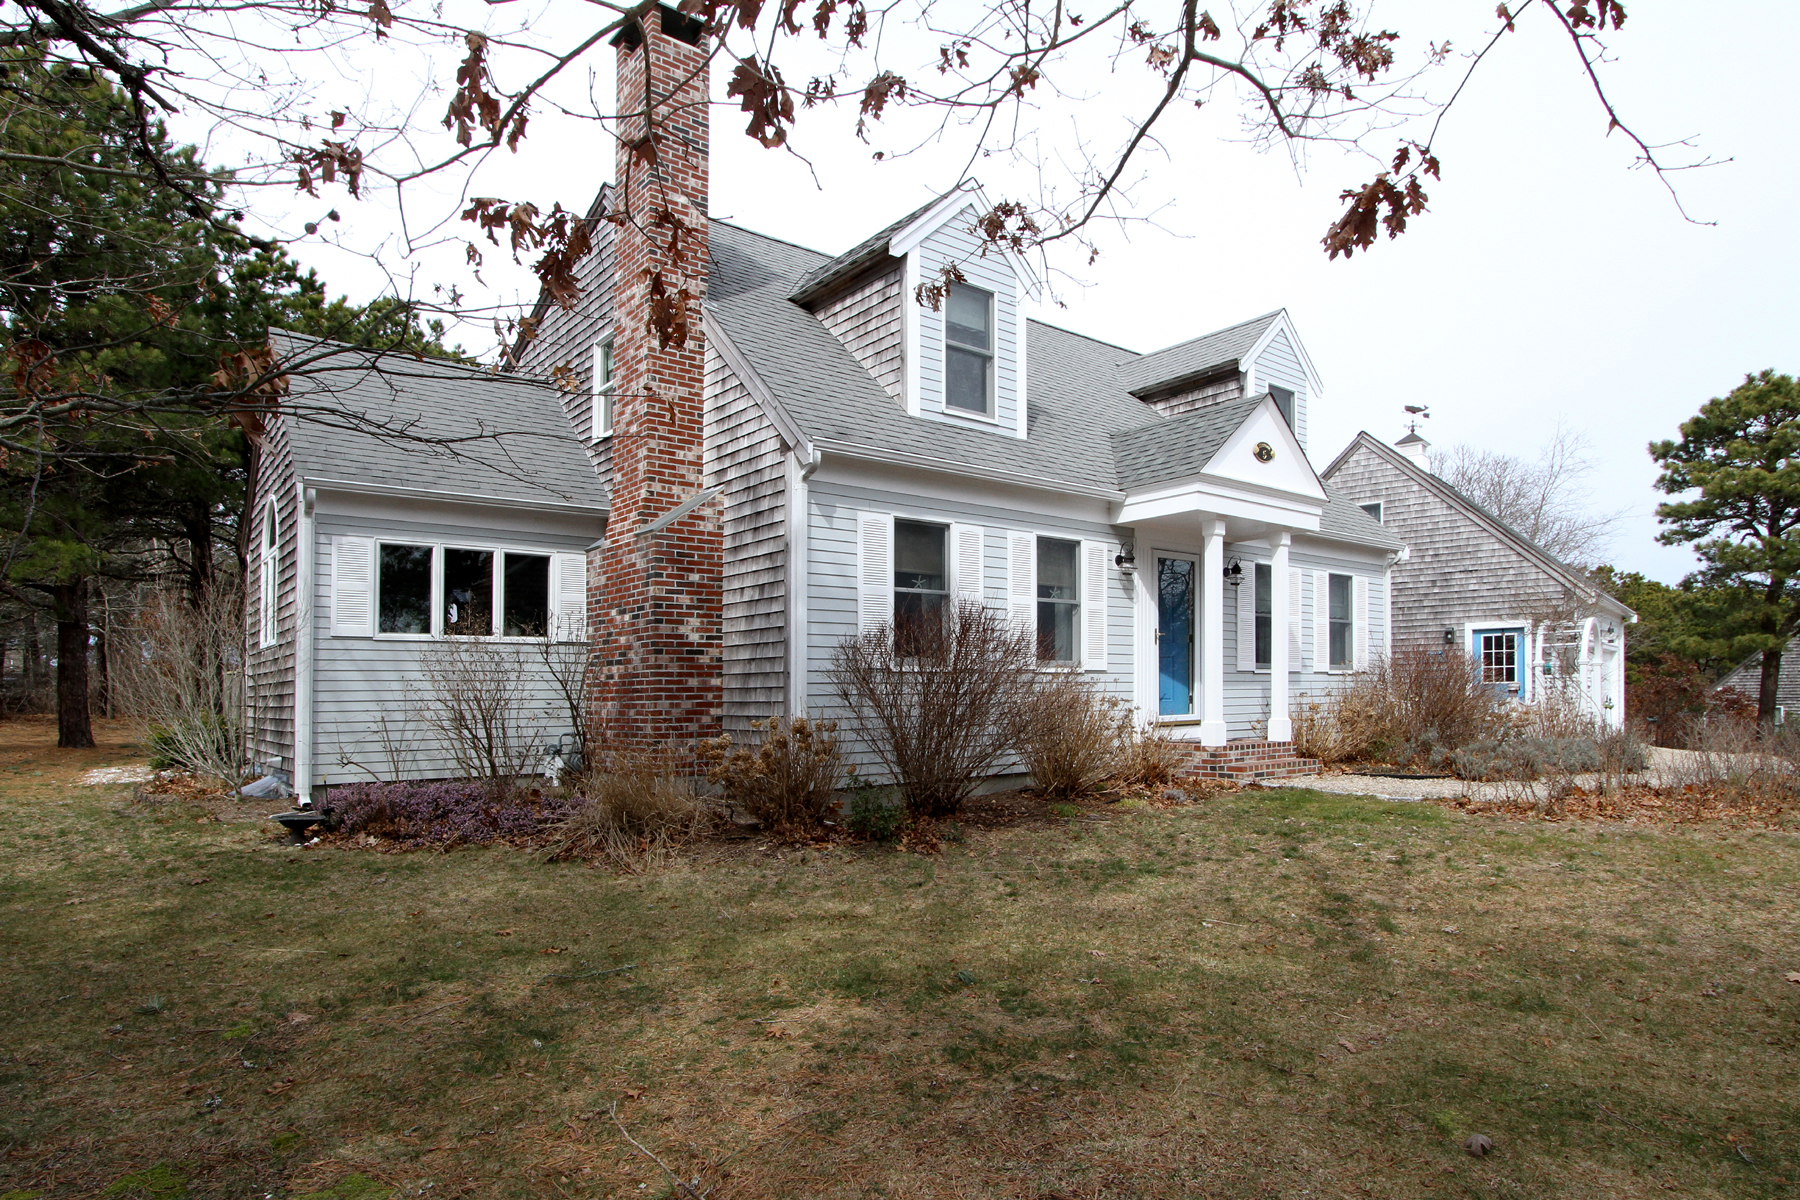 Single Family Home for Sale at 5 Sandy Meadow Way, Eastham, MA Eastham, Massachusetts, 02642 United States